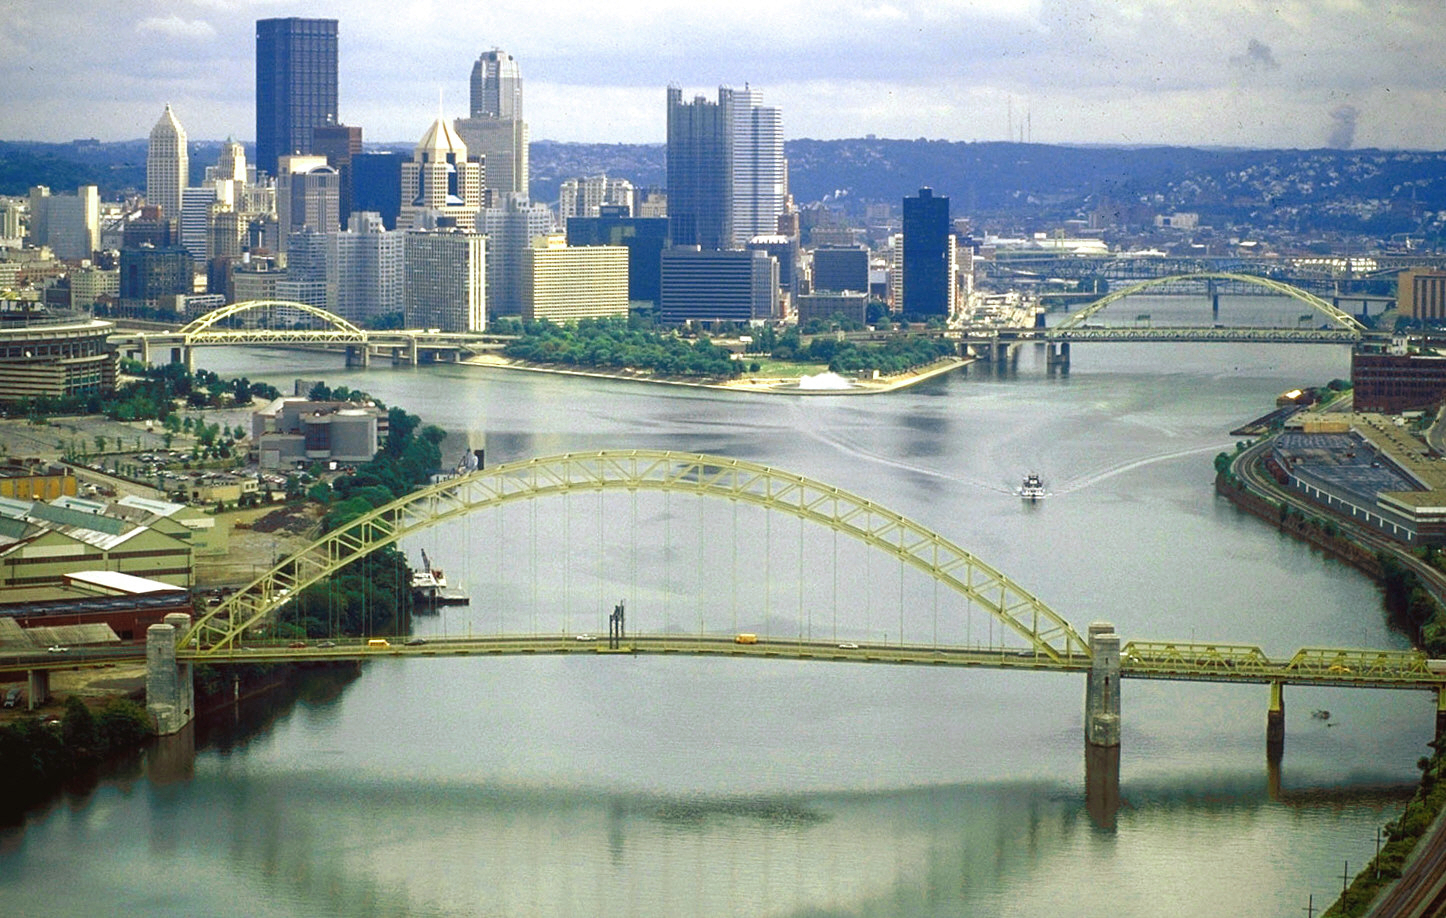 3 RIVERS: The Allegheny River, left, and Monongahela River join to form the Ohio River at Pittsburgh, Pennsylvania, the largest metropolitan area on the river. (Image Source: As a work of the U.S. federal government, the image is in the public domain.)